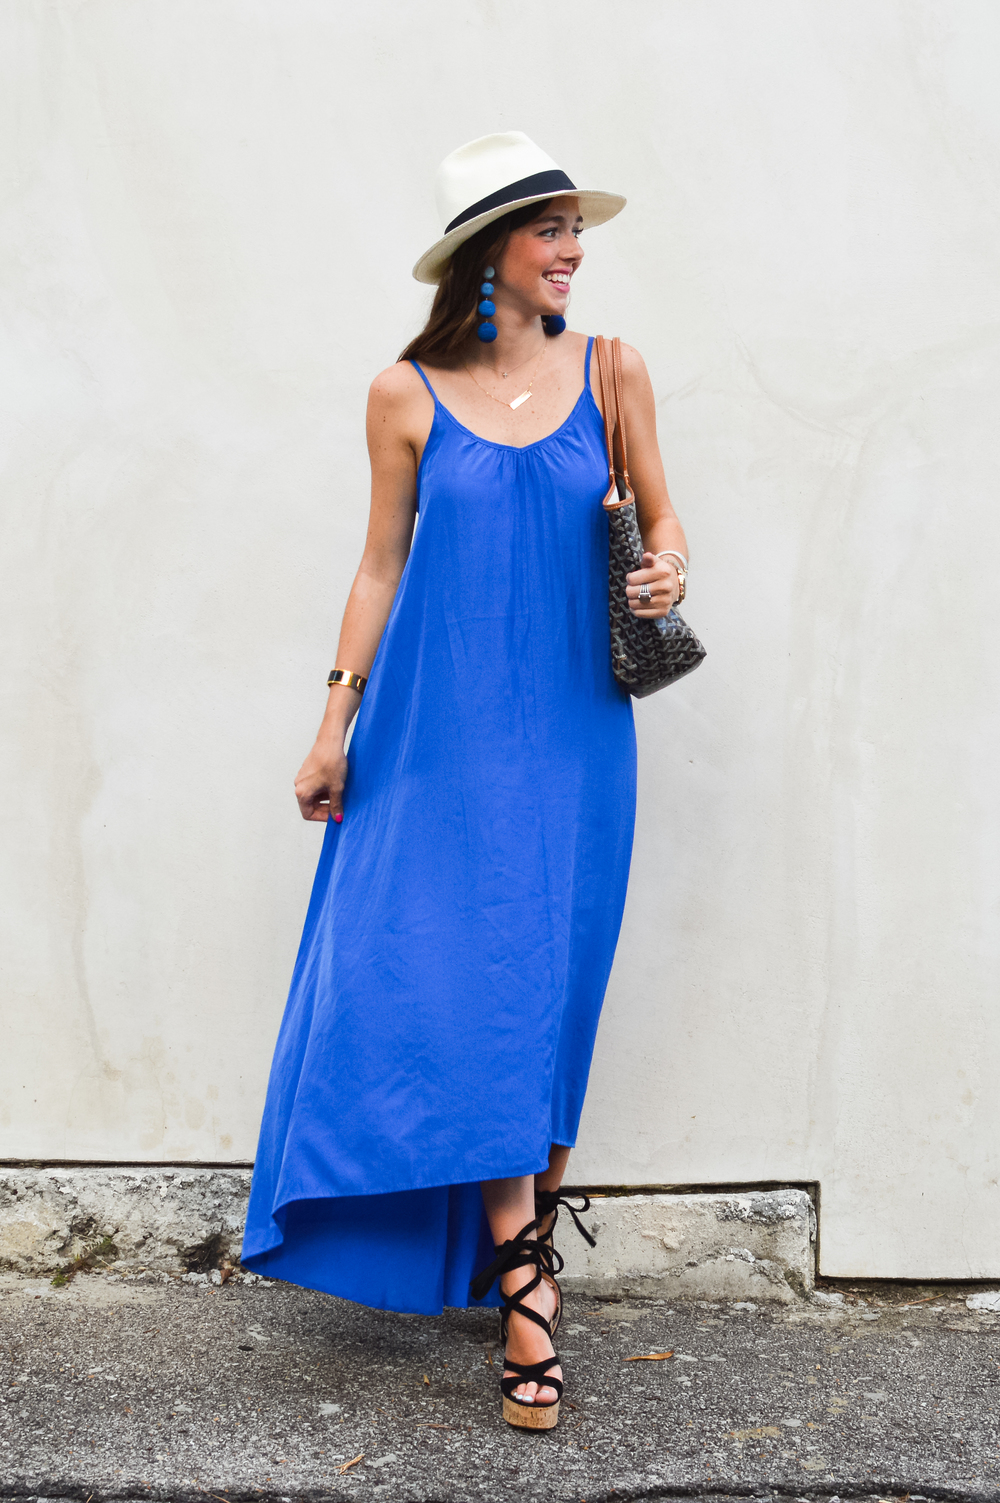 fashion blogger m gemi maxi dress (15 of 38).jpg